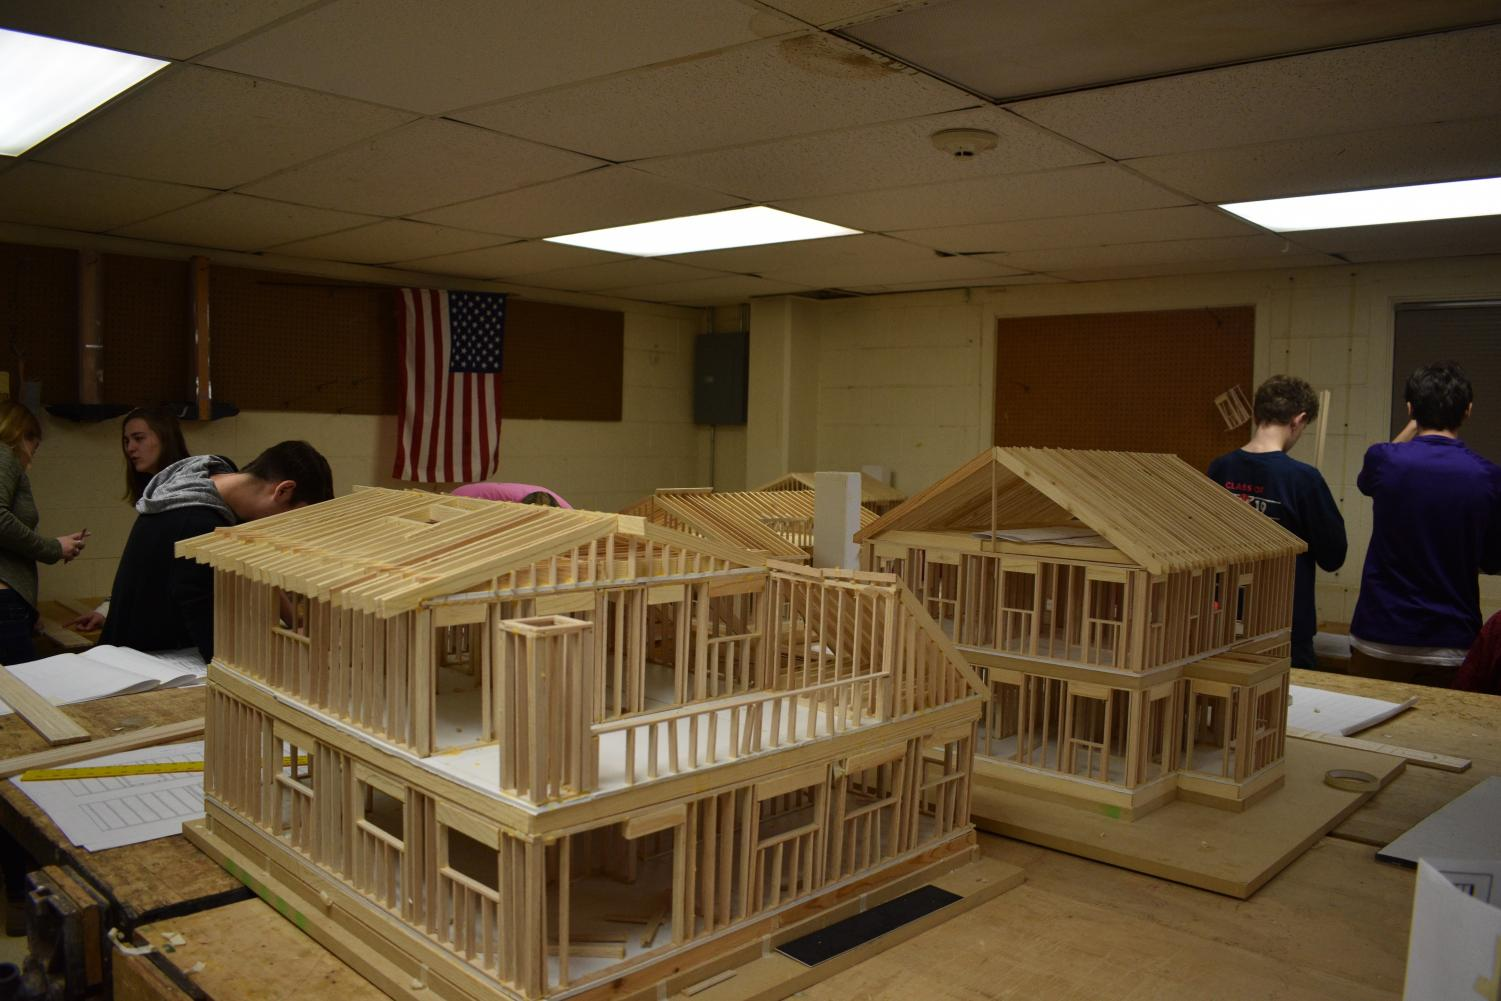 Architecture & design classes work on making models of houses.